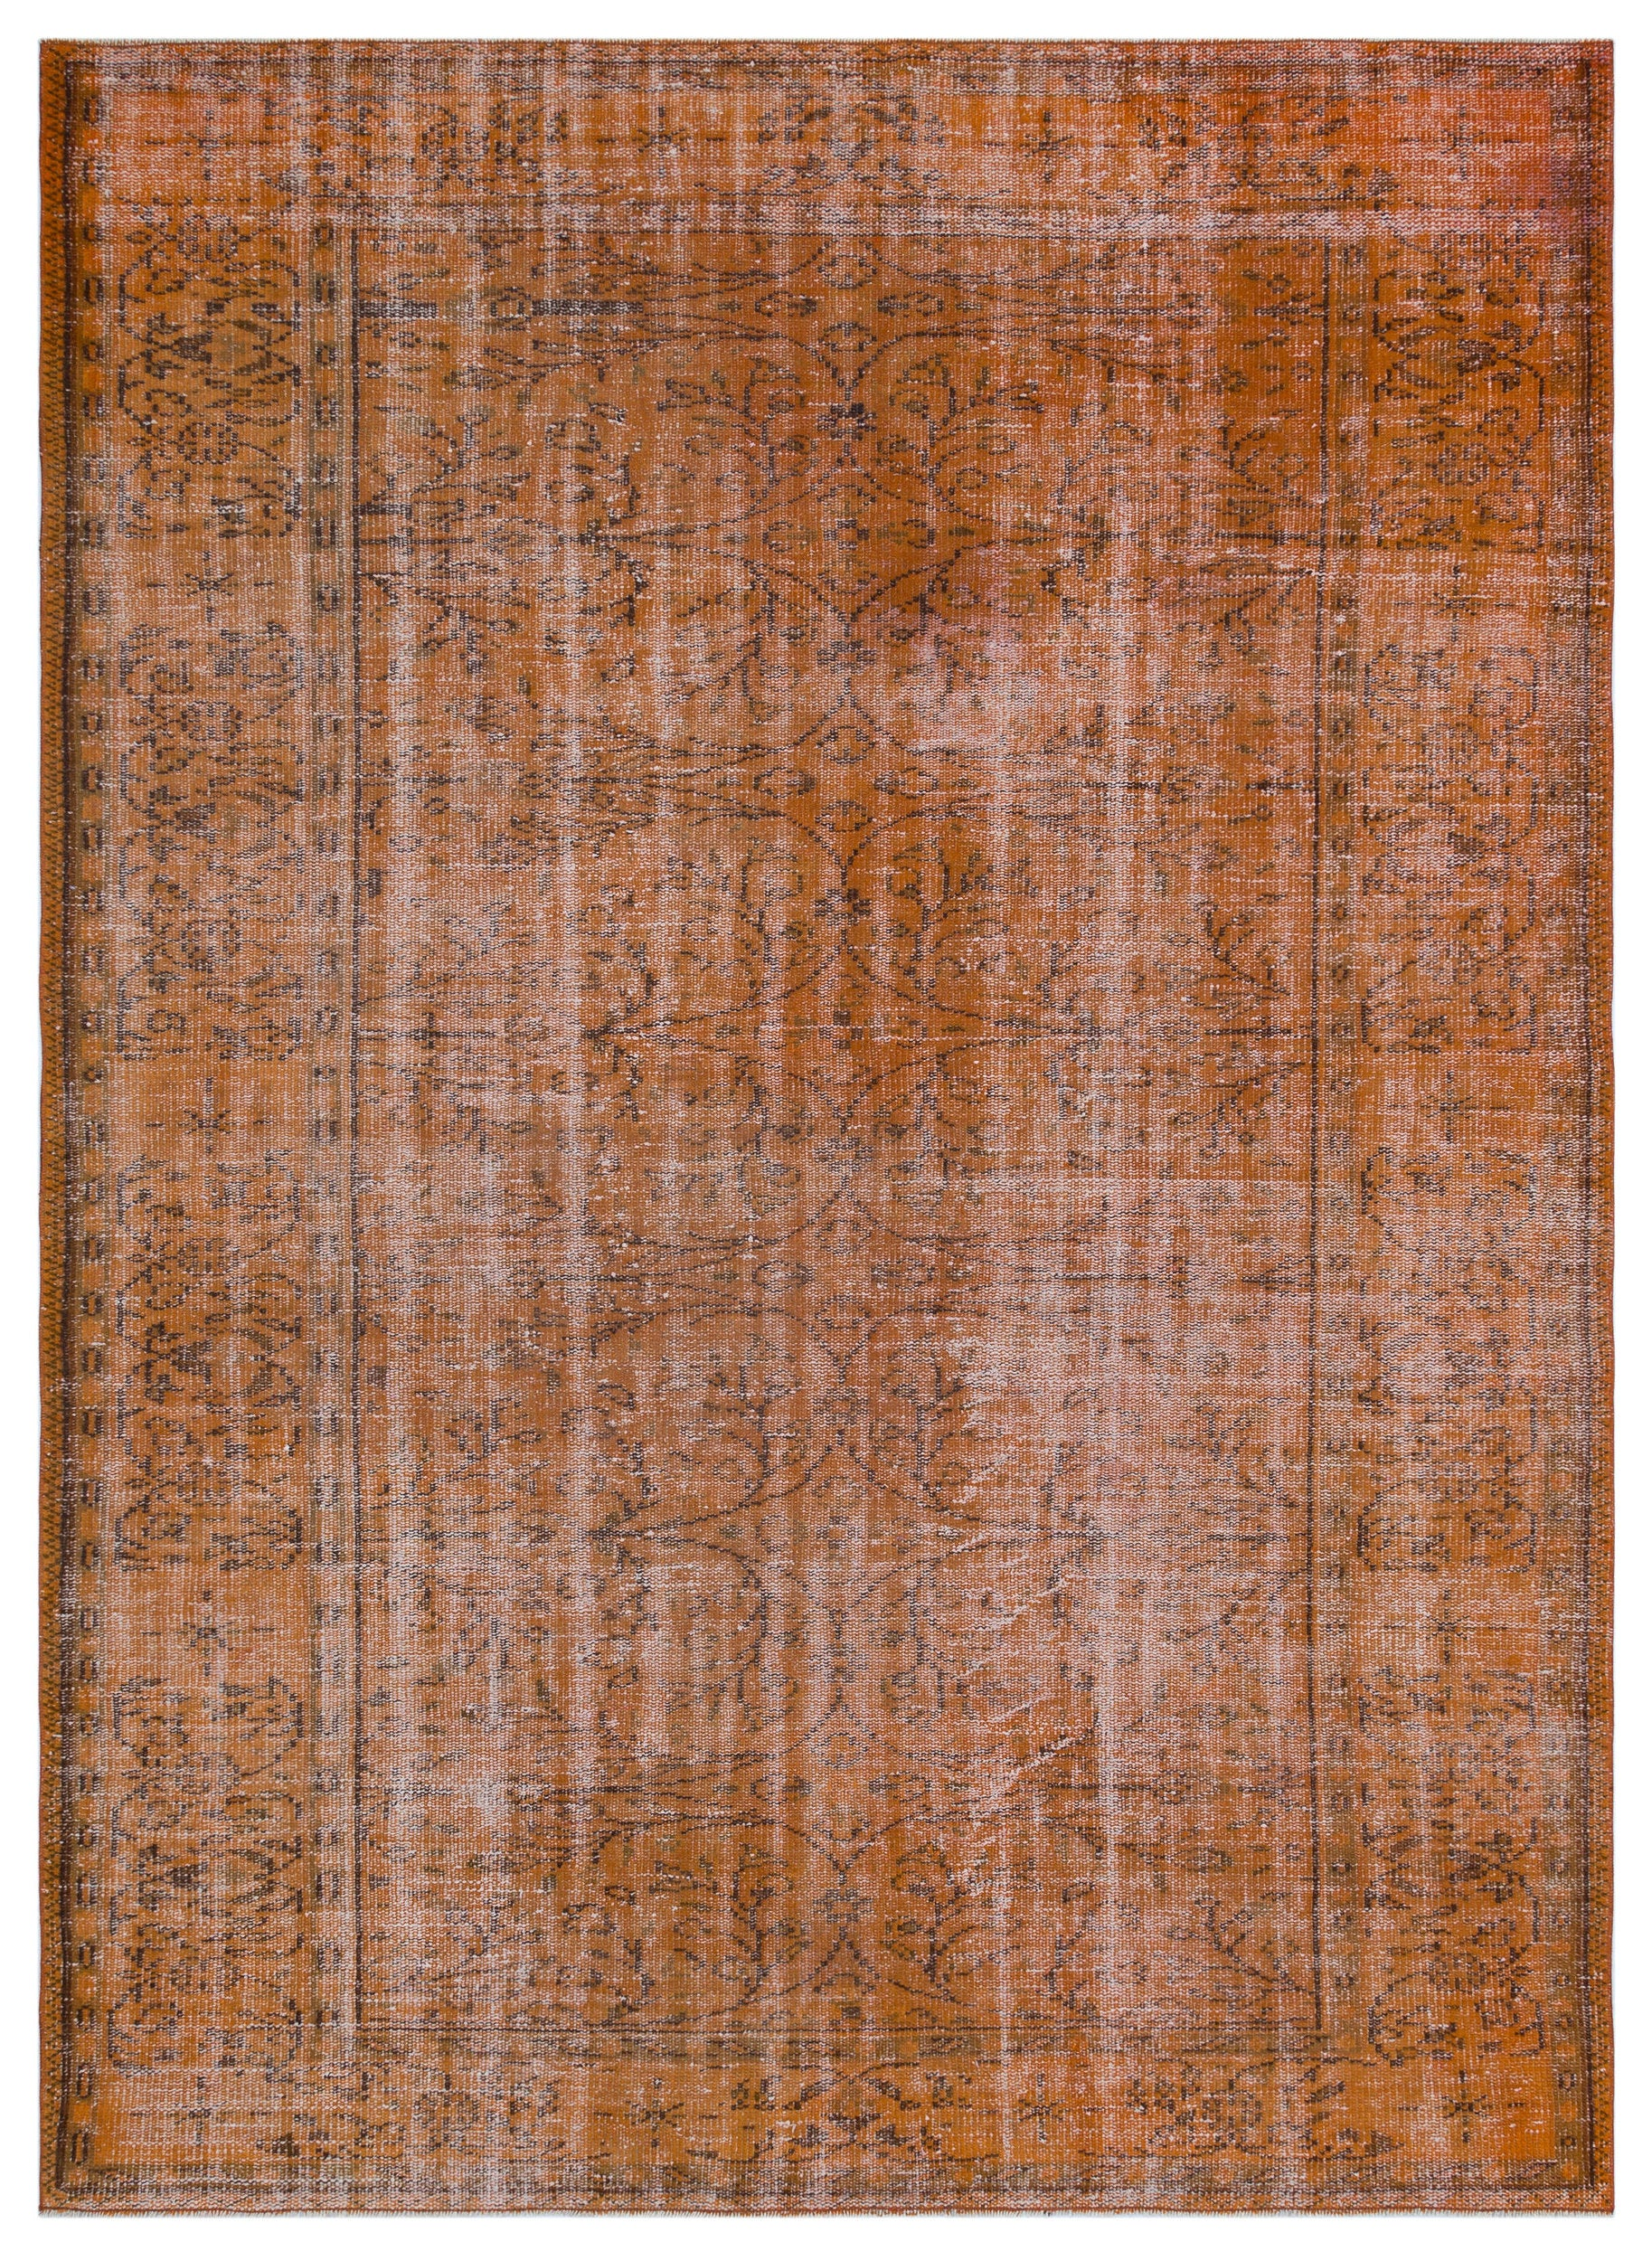 Brown Over Dyed Vintage Rug 6'1'' x 8'5'' ft 186 x 256 cm